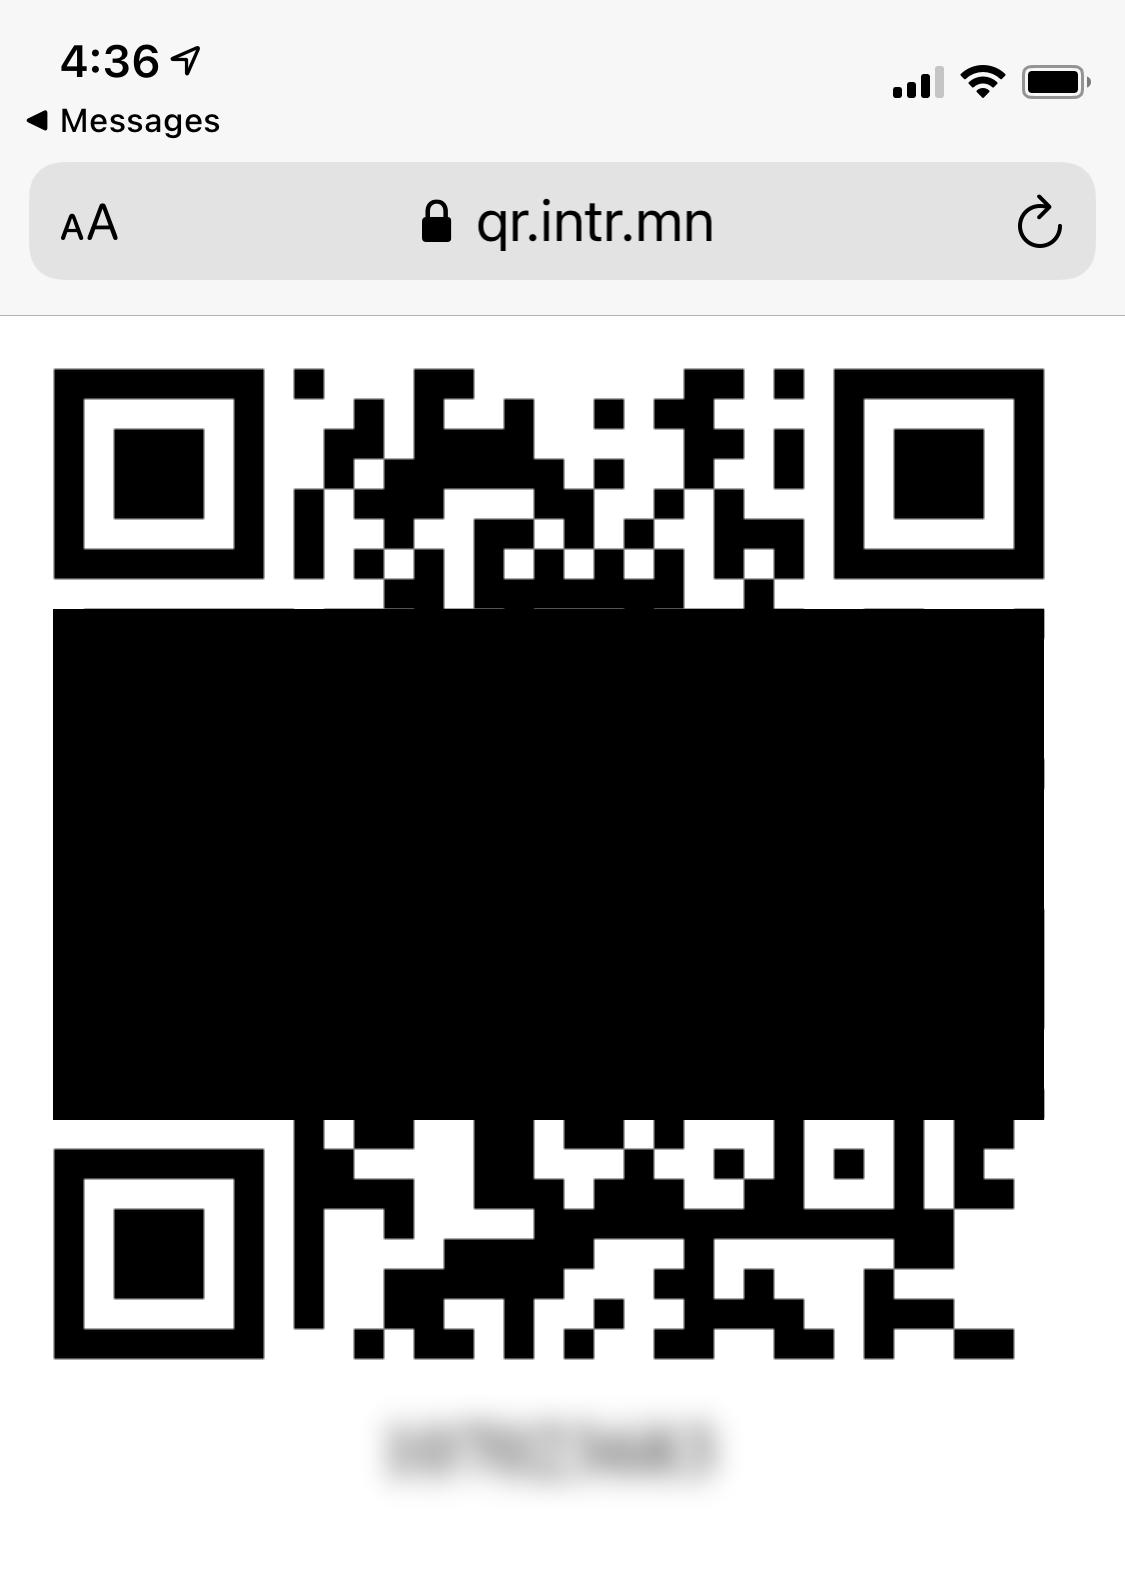 Screenshot of mobile safari with a web page displaying a QR code and a number (with sensitive info removed).